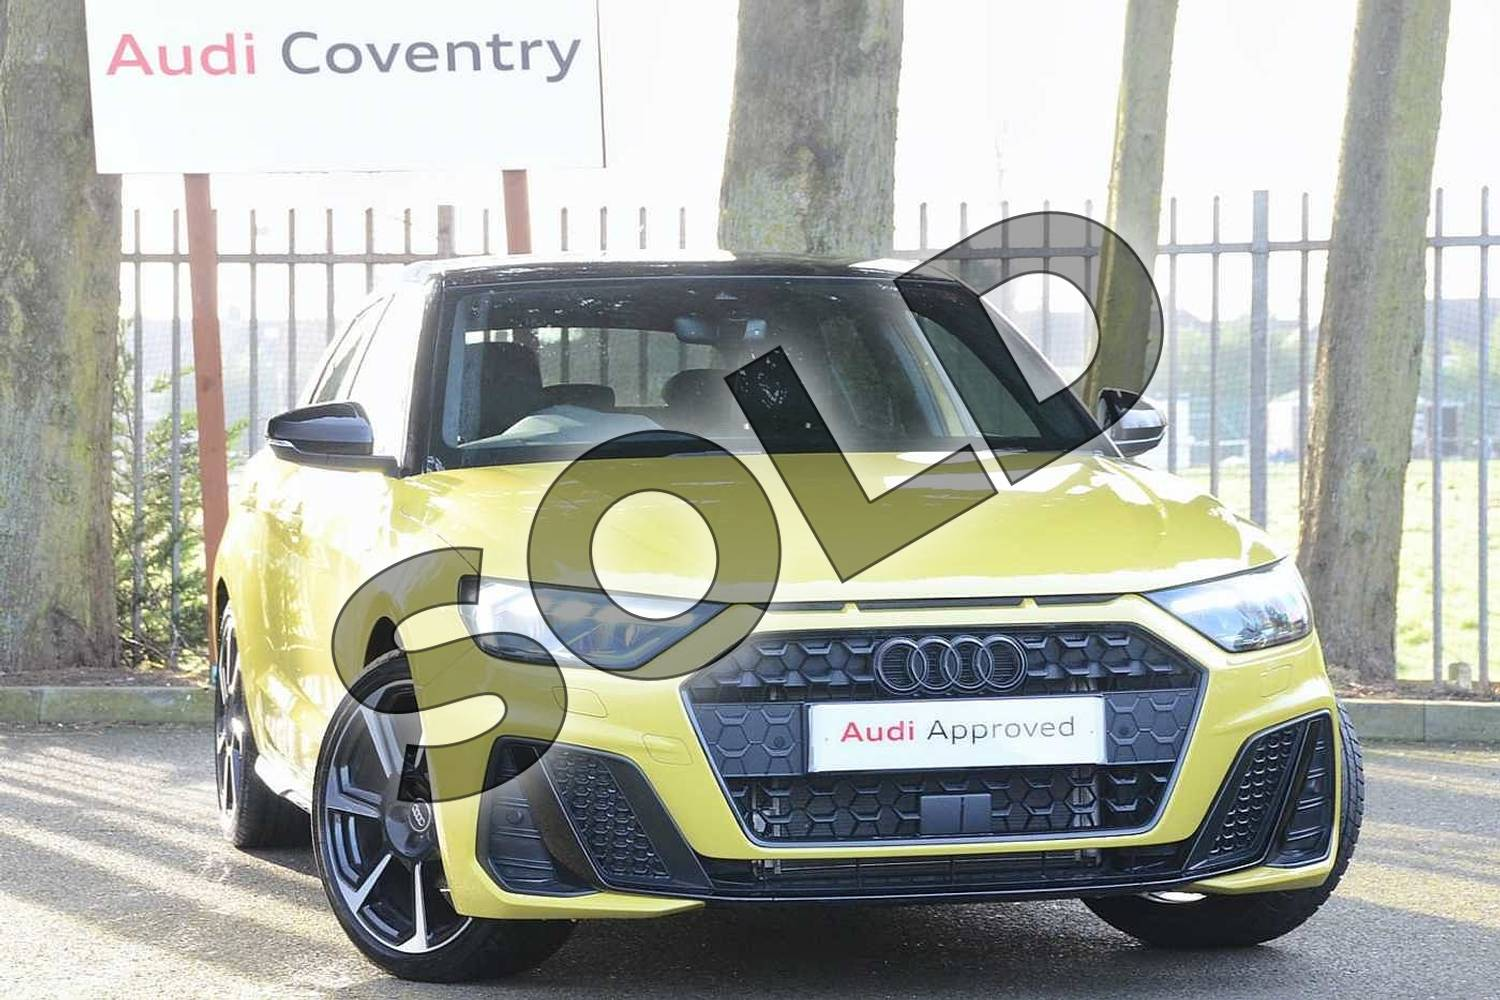 2020 Audi A1 Sportback Special Editions 35 TFSI S Line Style Edition 5dr S Tronic in Python Yellow Metallic at Coventry Audi